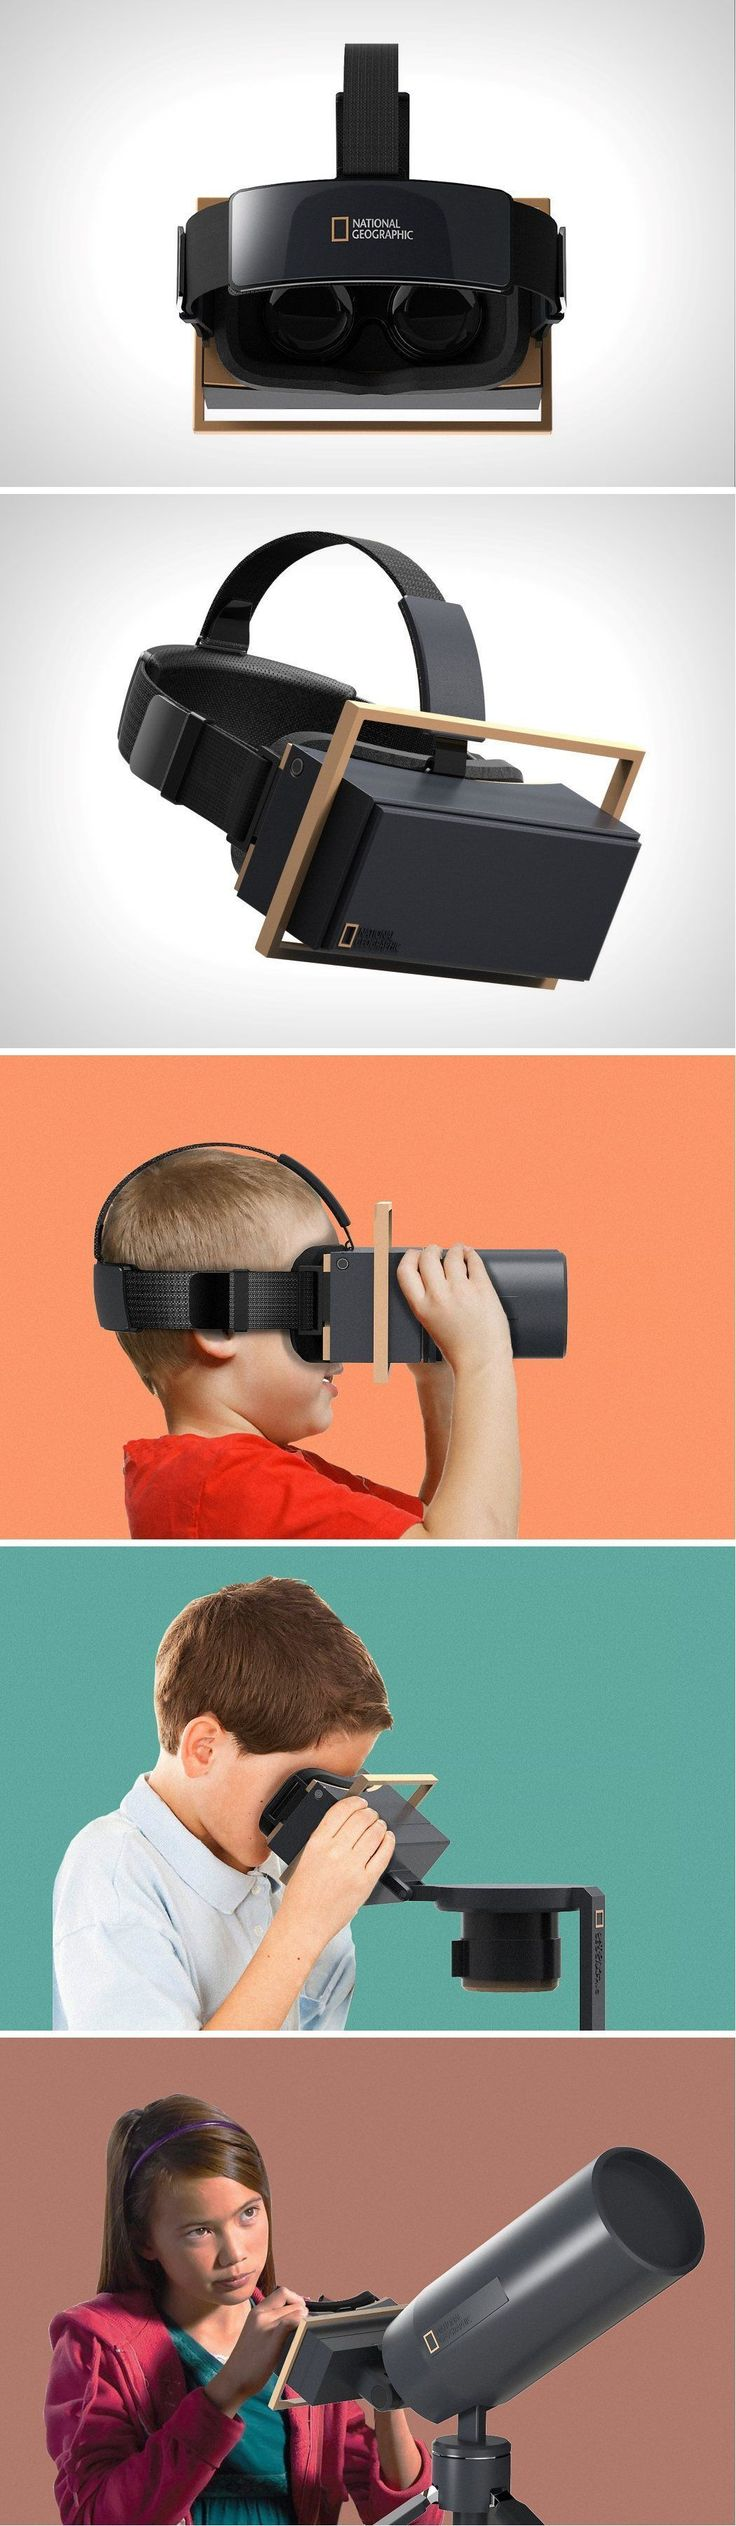 The VR Touch Kit for National Geographic comes with three attachments that mimic binoculars, a telescope, and a microscope. Making the aspect of exploration highly believable and educational too.